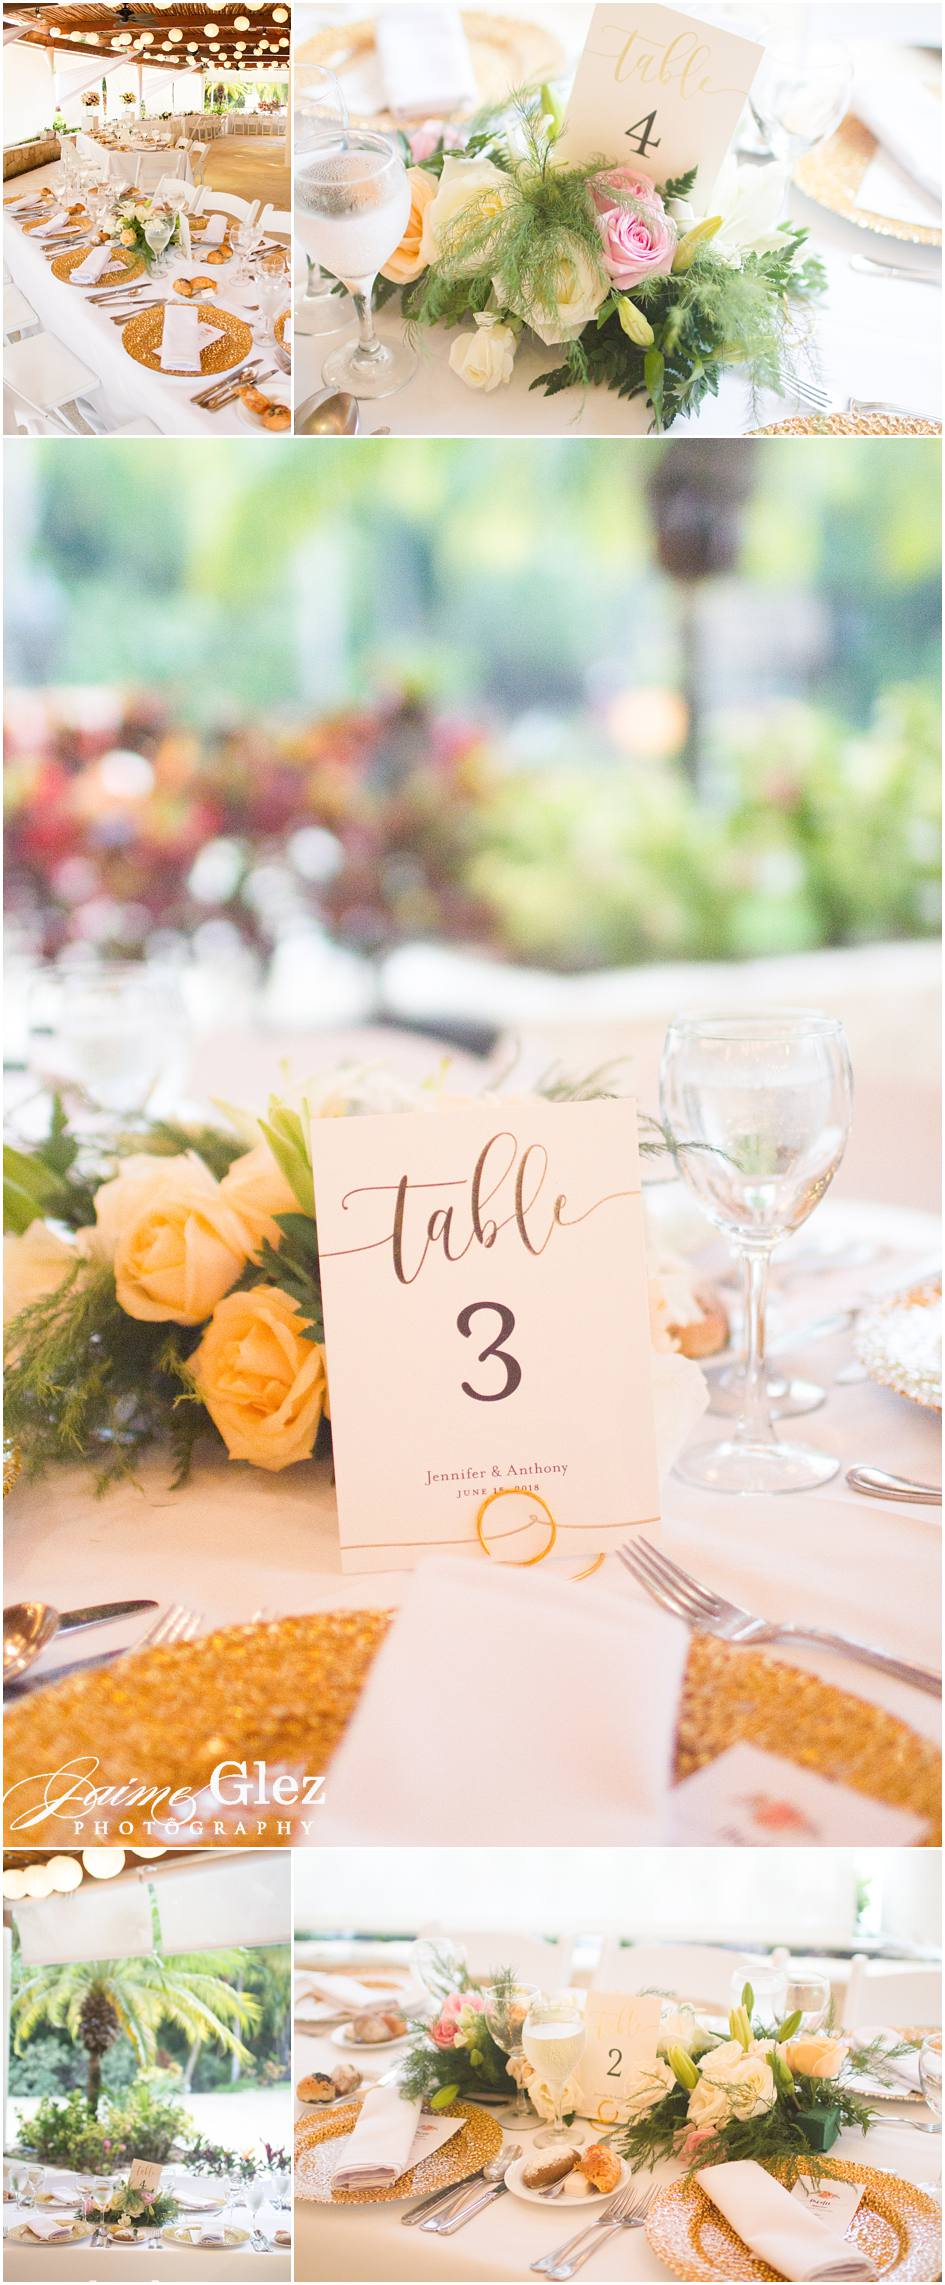 Very inspirational and romantic table design. Love every detail!